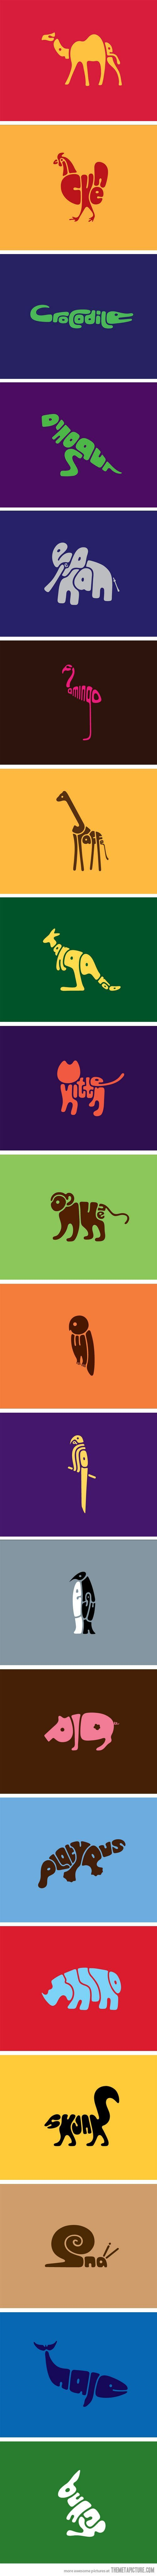 Word Animals - bright, colourful & fun. Great printed off for kids room?: